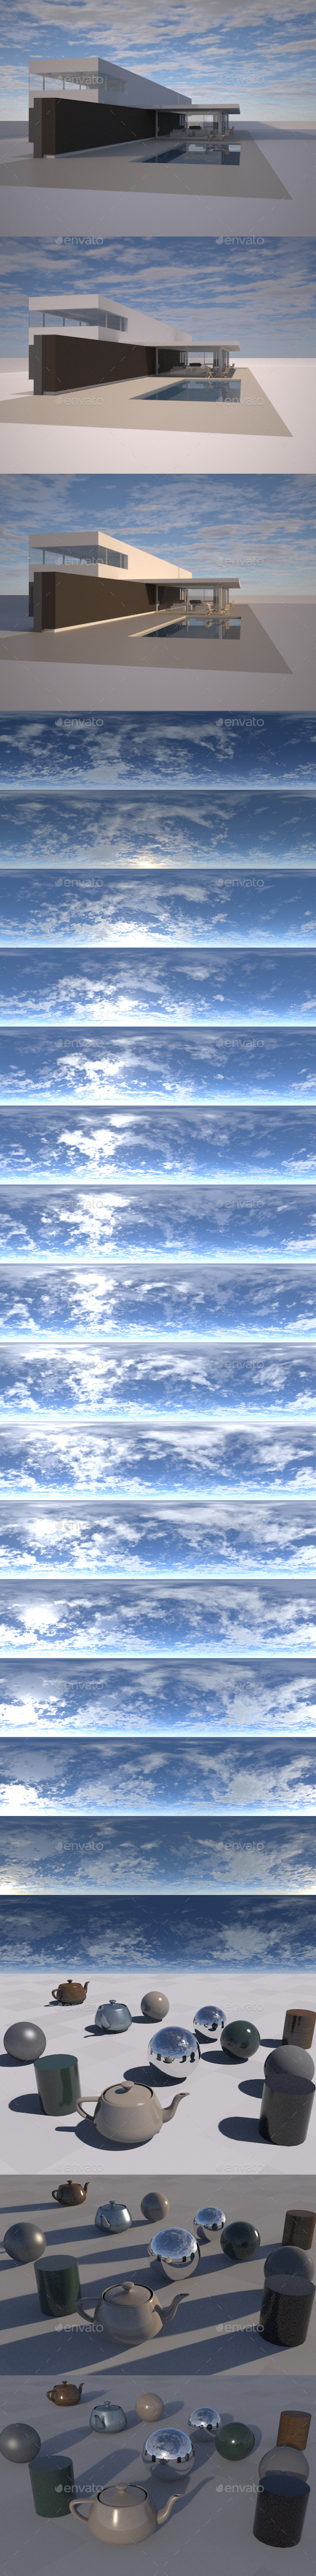 3DOcean Sky with Clouds Pack Timelapse 16 EXR HDR pics 9130797